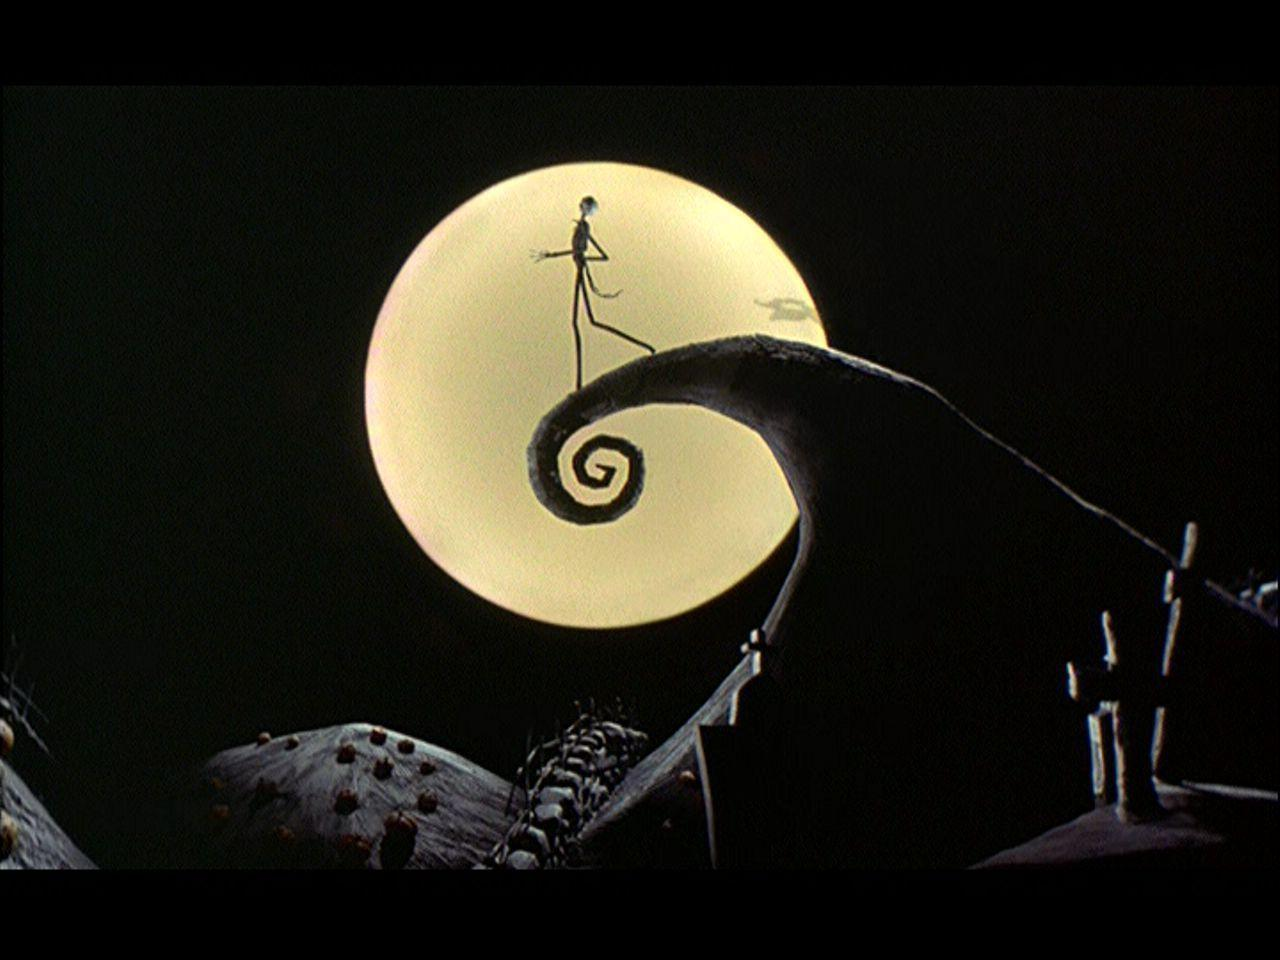 Free Nightmare Before Christmas Live Wallpaper Android